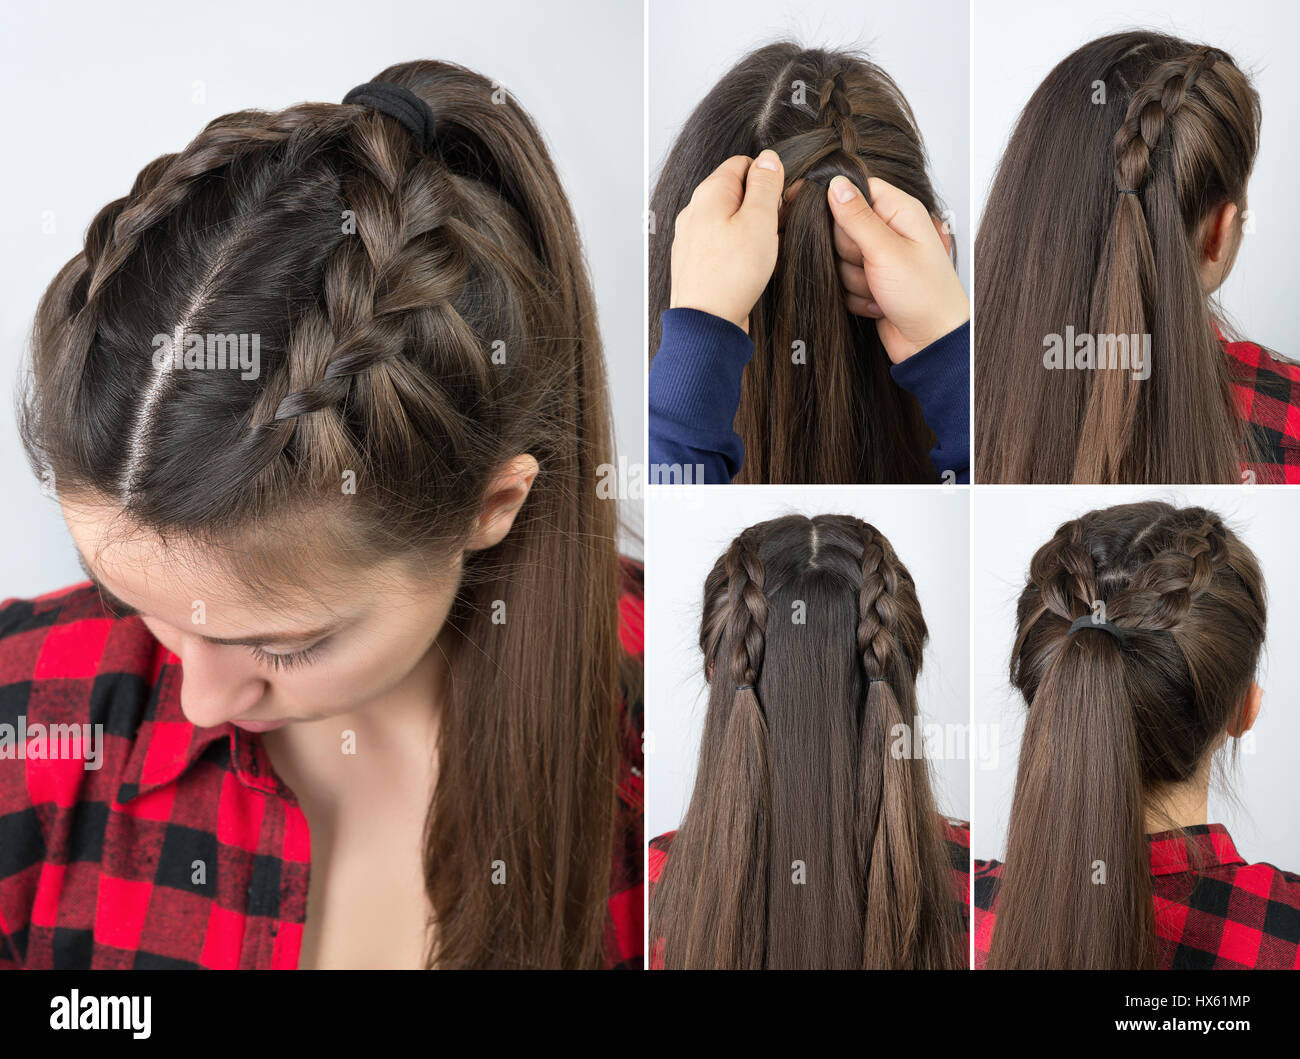 Simple Braided Hairstyle Tutorial Step By Step. Easy Hairstyle For Long Hair.  Pony Tail With Braid. Hair Tutorial